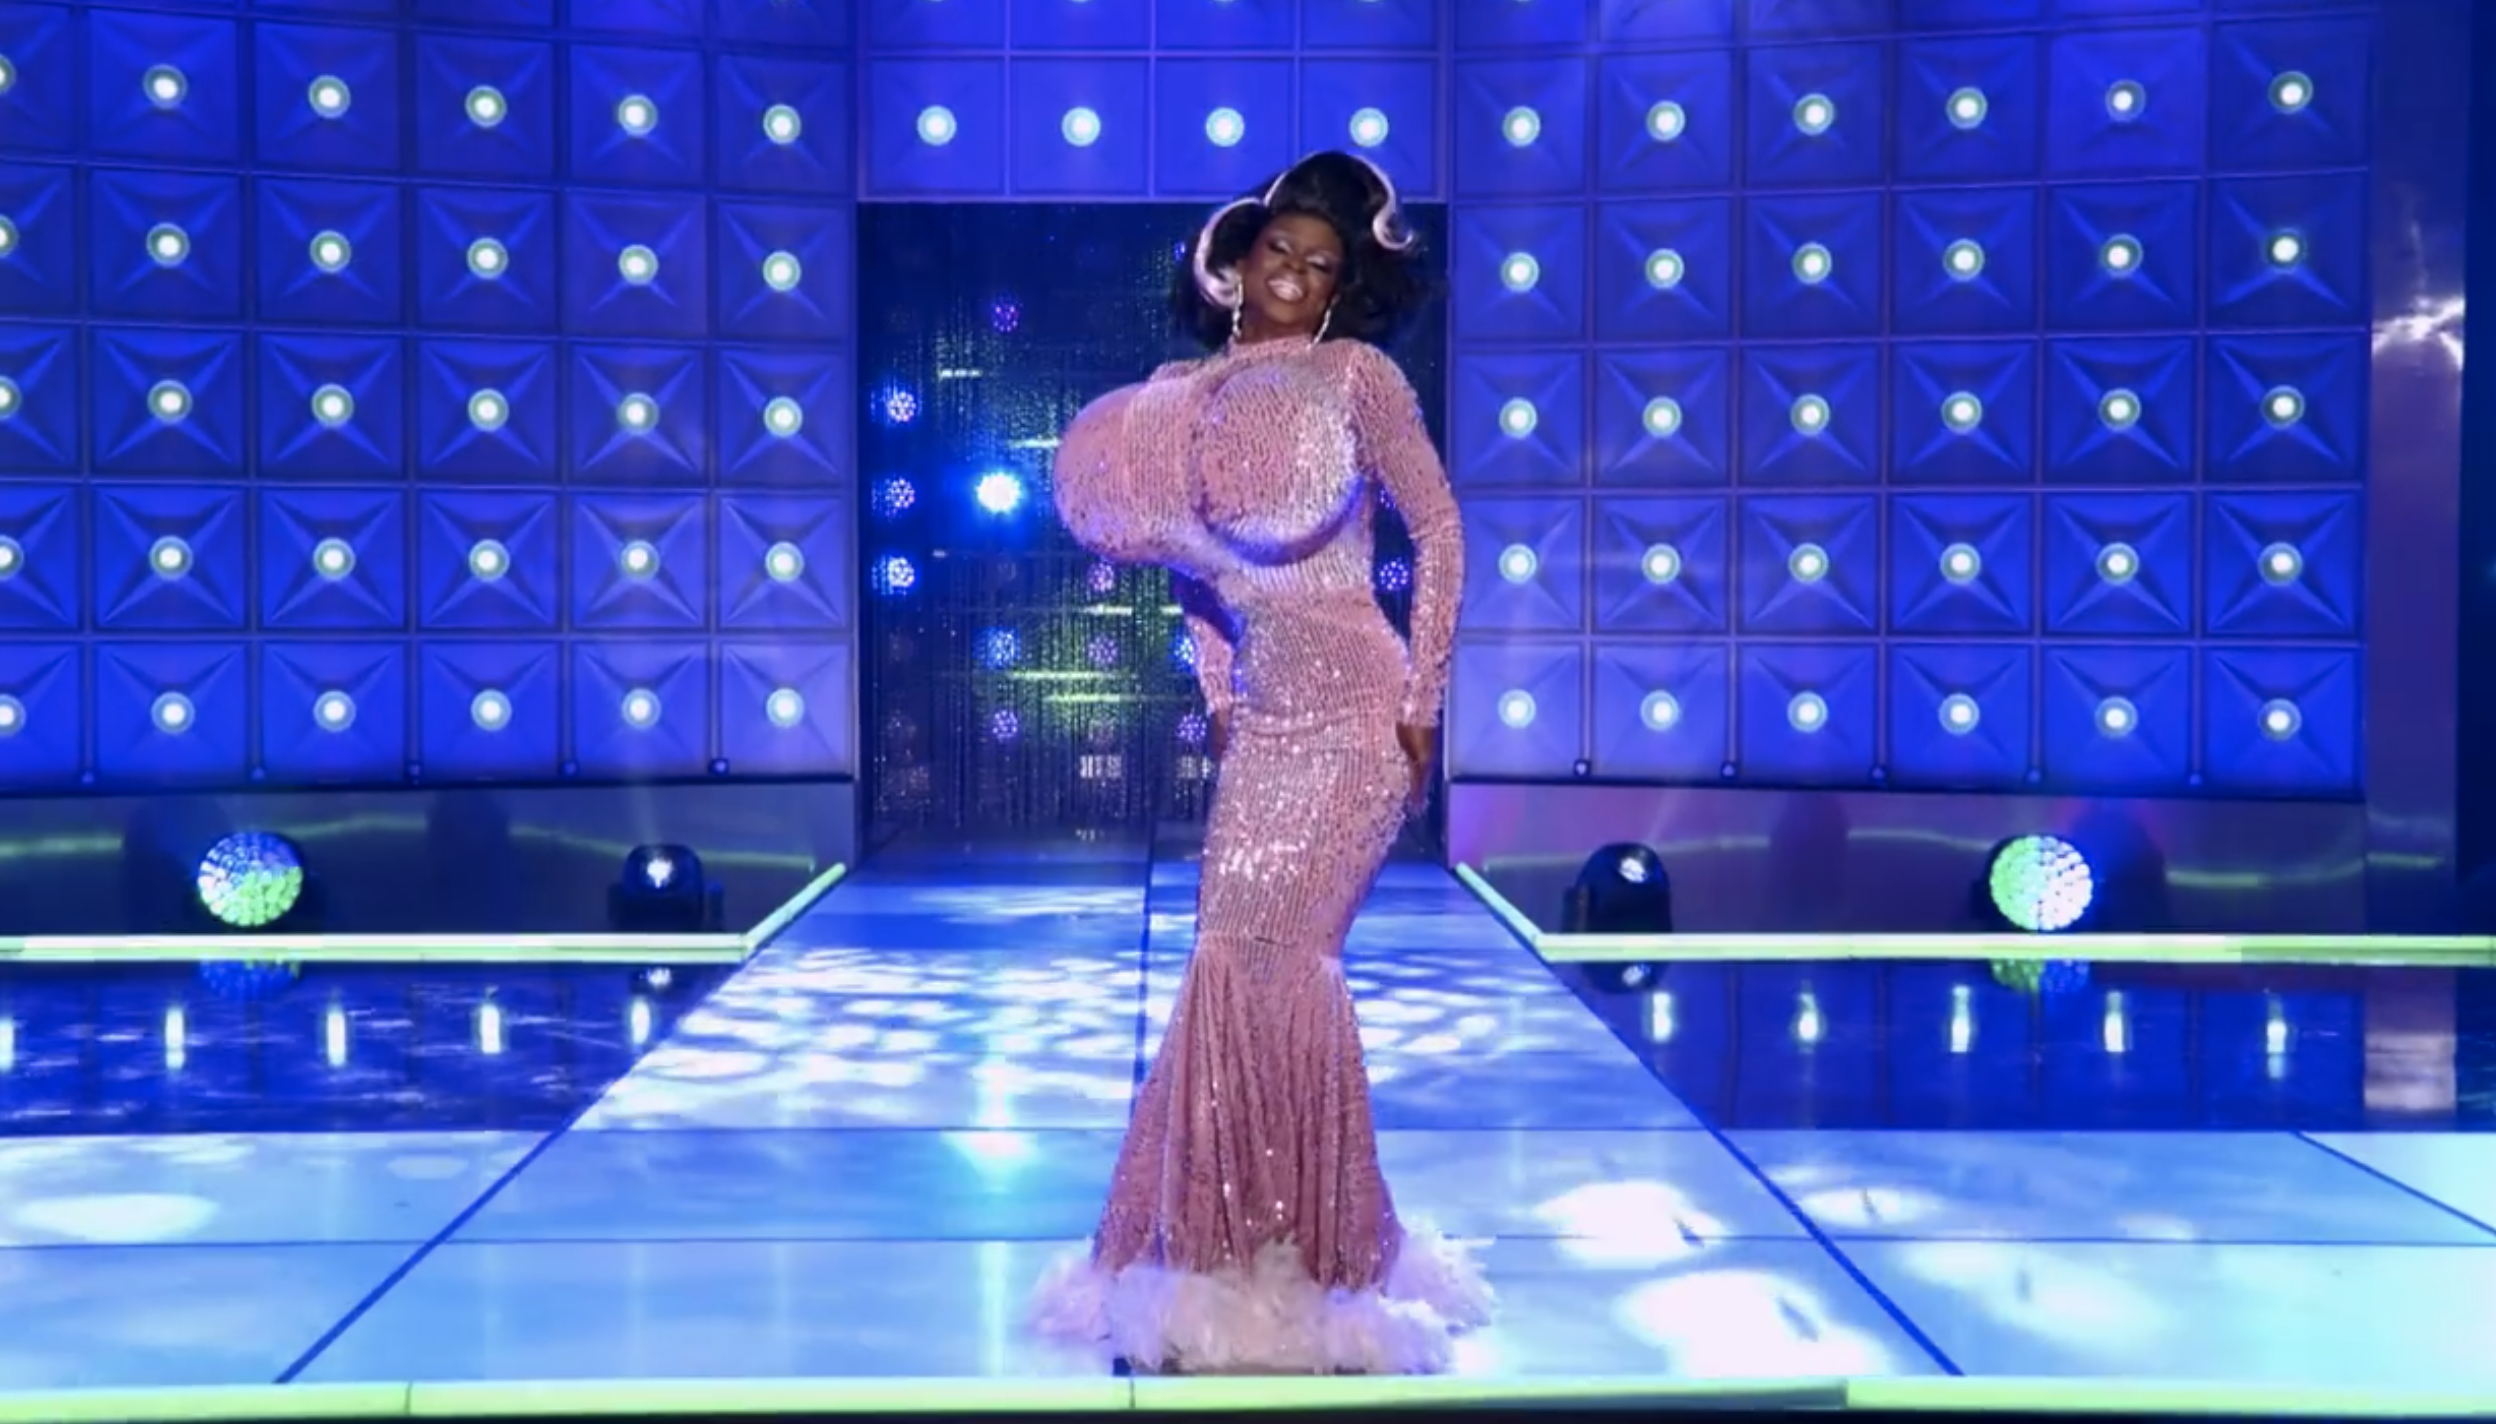 Symone on stage in a sequined and feathered gown